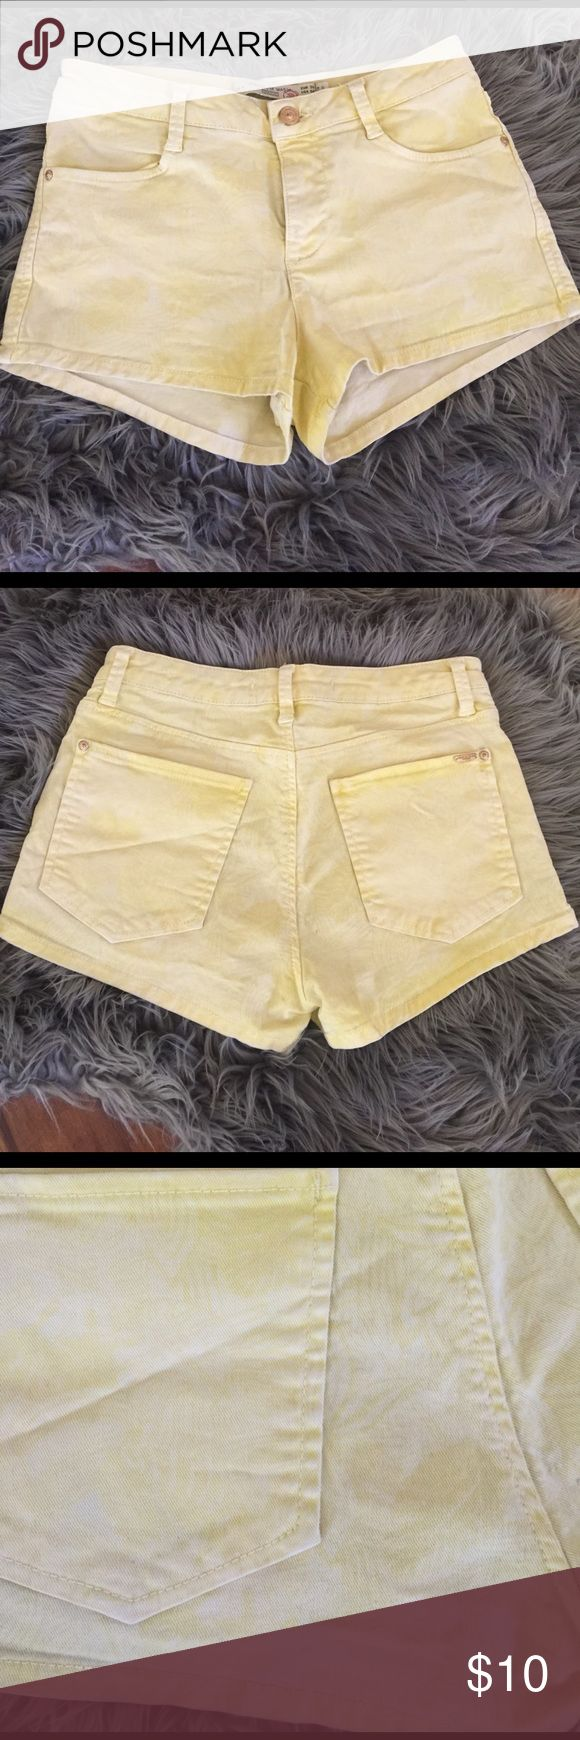 Light Yellow Zara Shorts Lights yellow Zara shorts with some very light tropical print in the background. Tiny stains shown. Very cute! Zara Shorts Jean Shorts